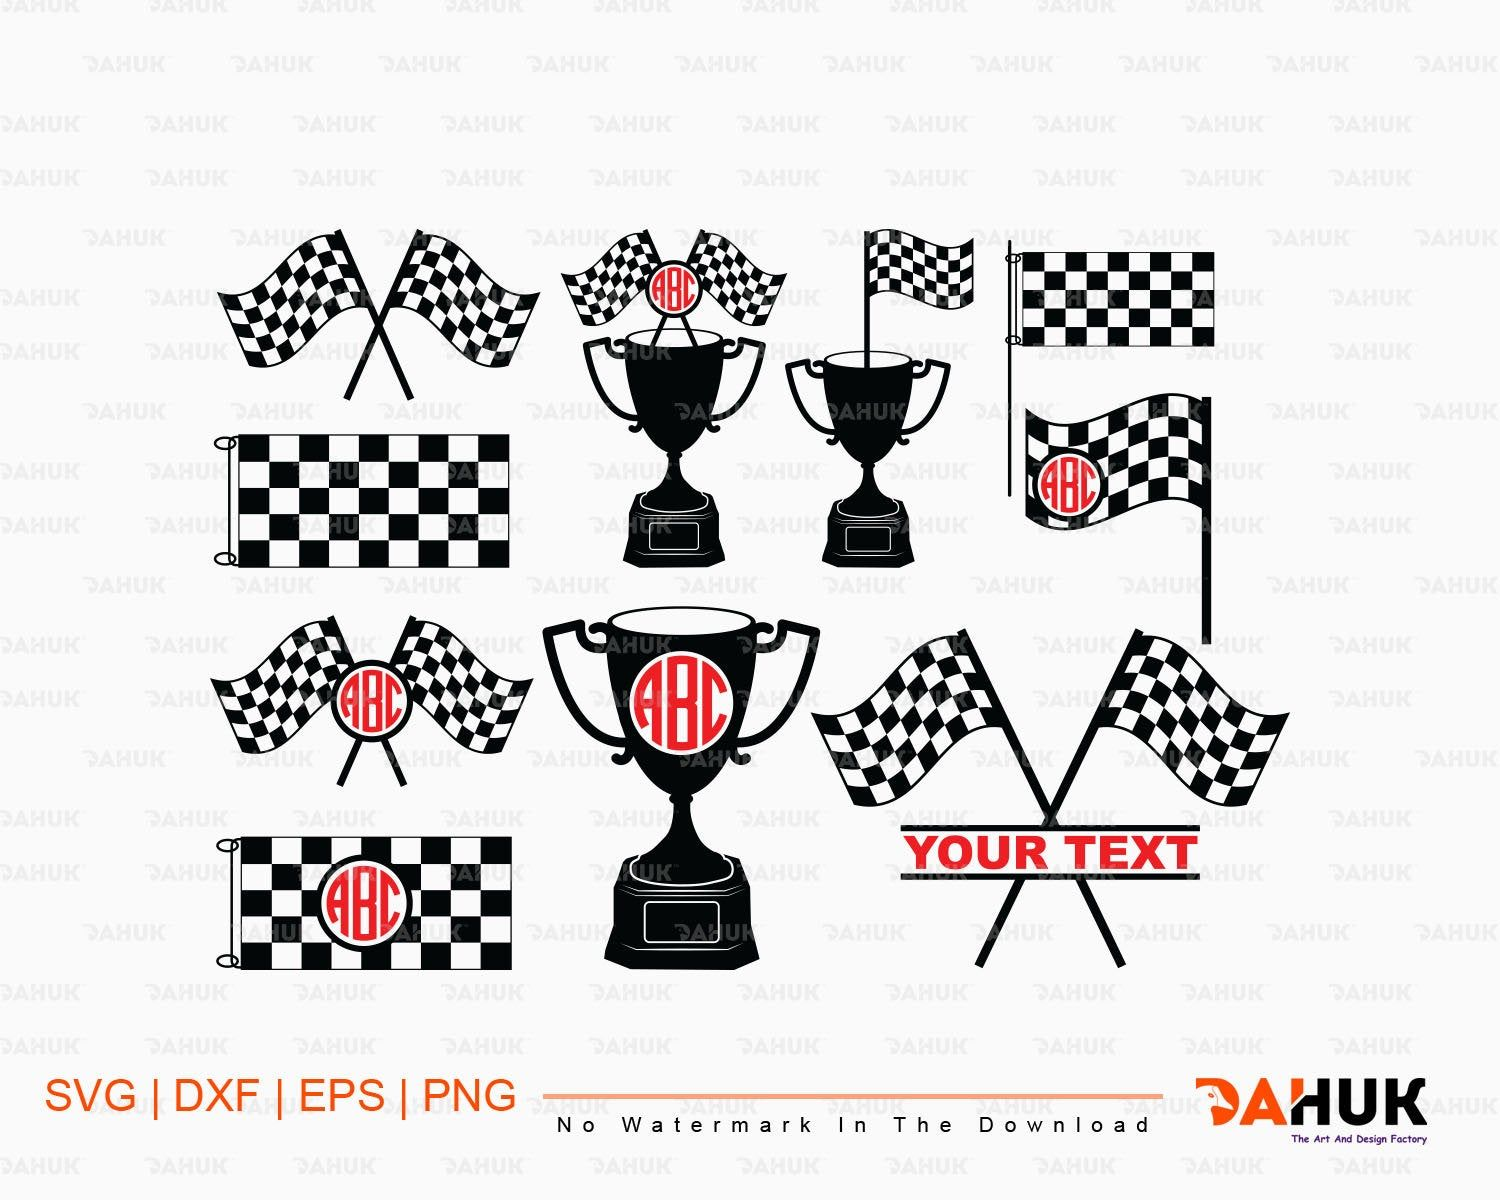 Racing Flag Svg Race Car Flag Svg Checkered Flag Eps Dxf Etsy In 2020 Car Flags Svg Flag